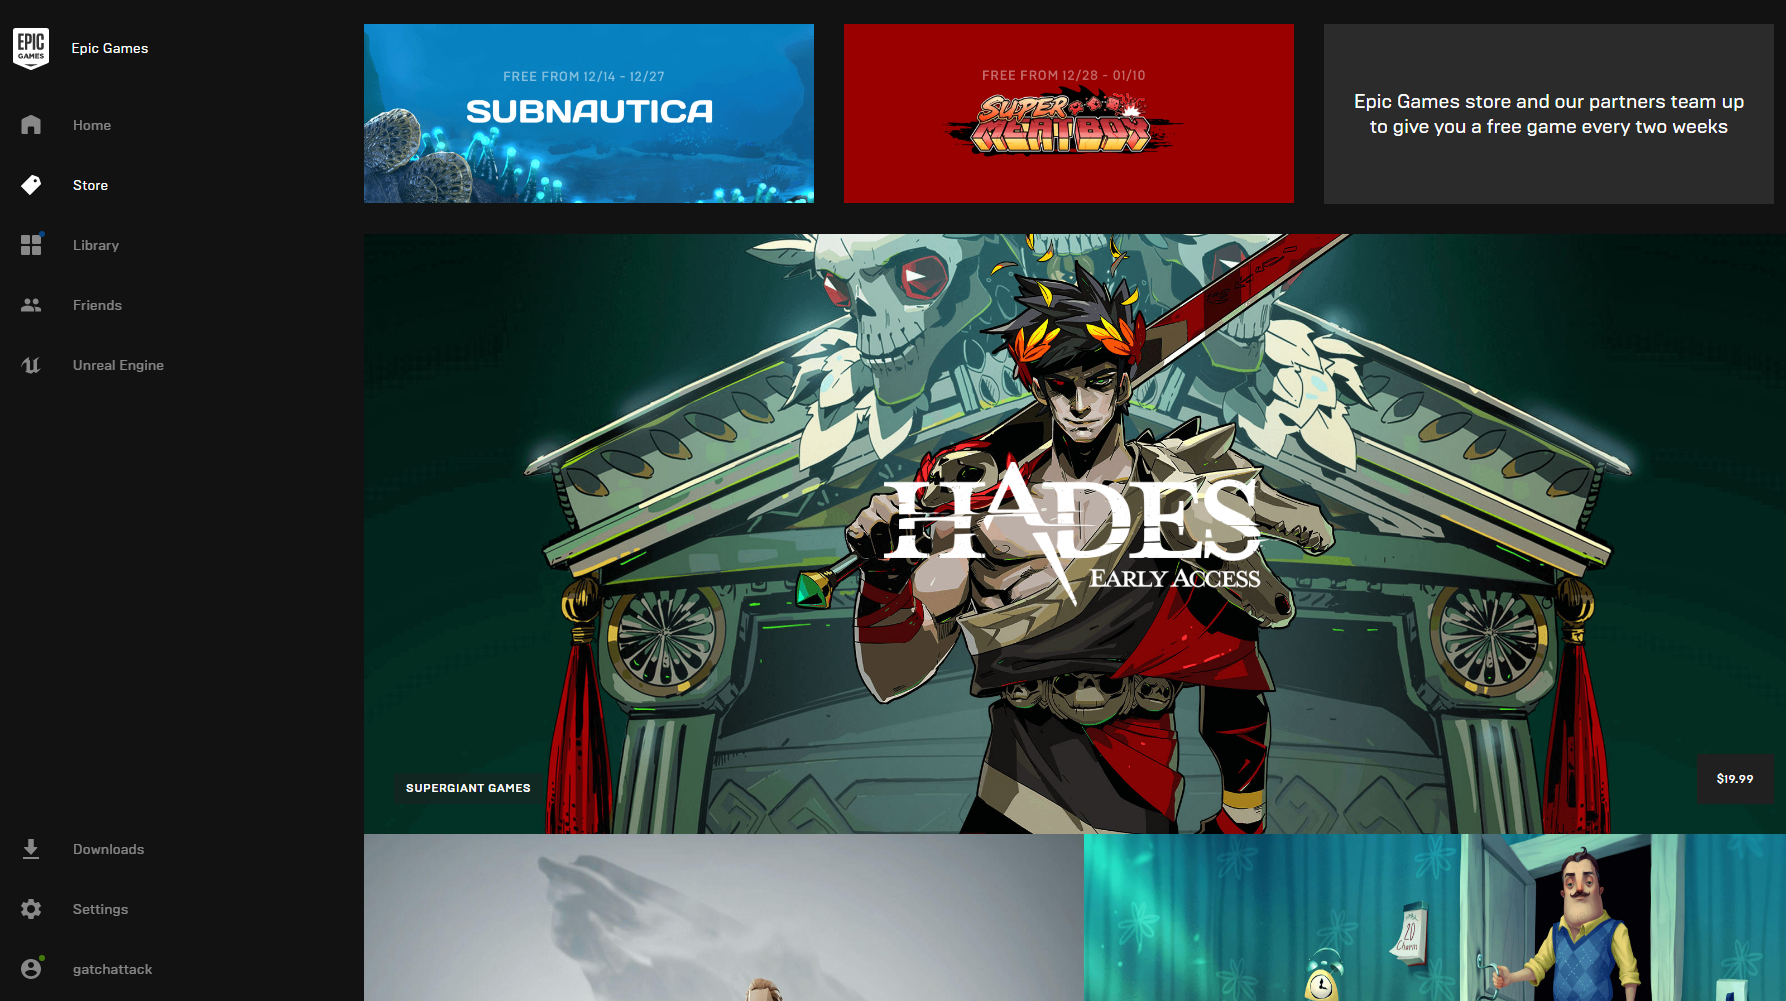 Epic's New PC Game Store Is Making Waves Even Without A Lot